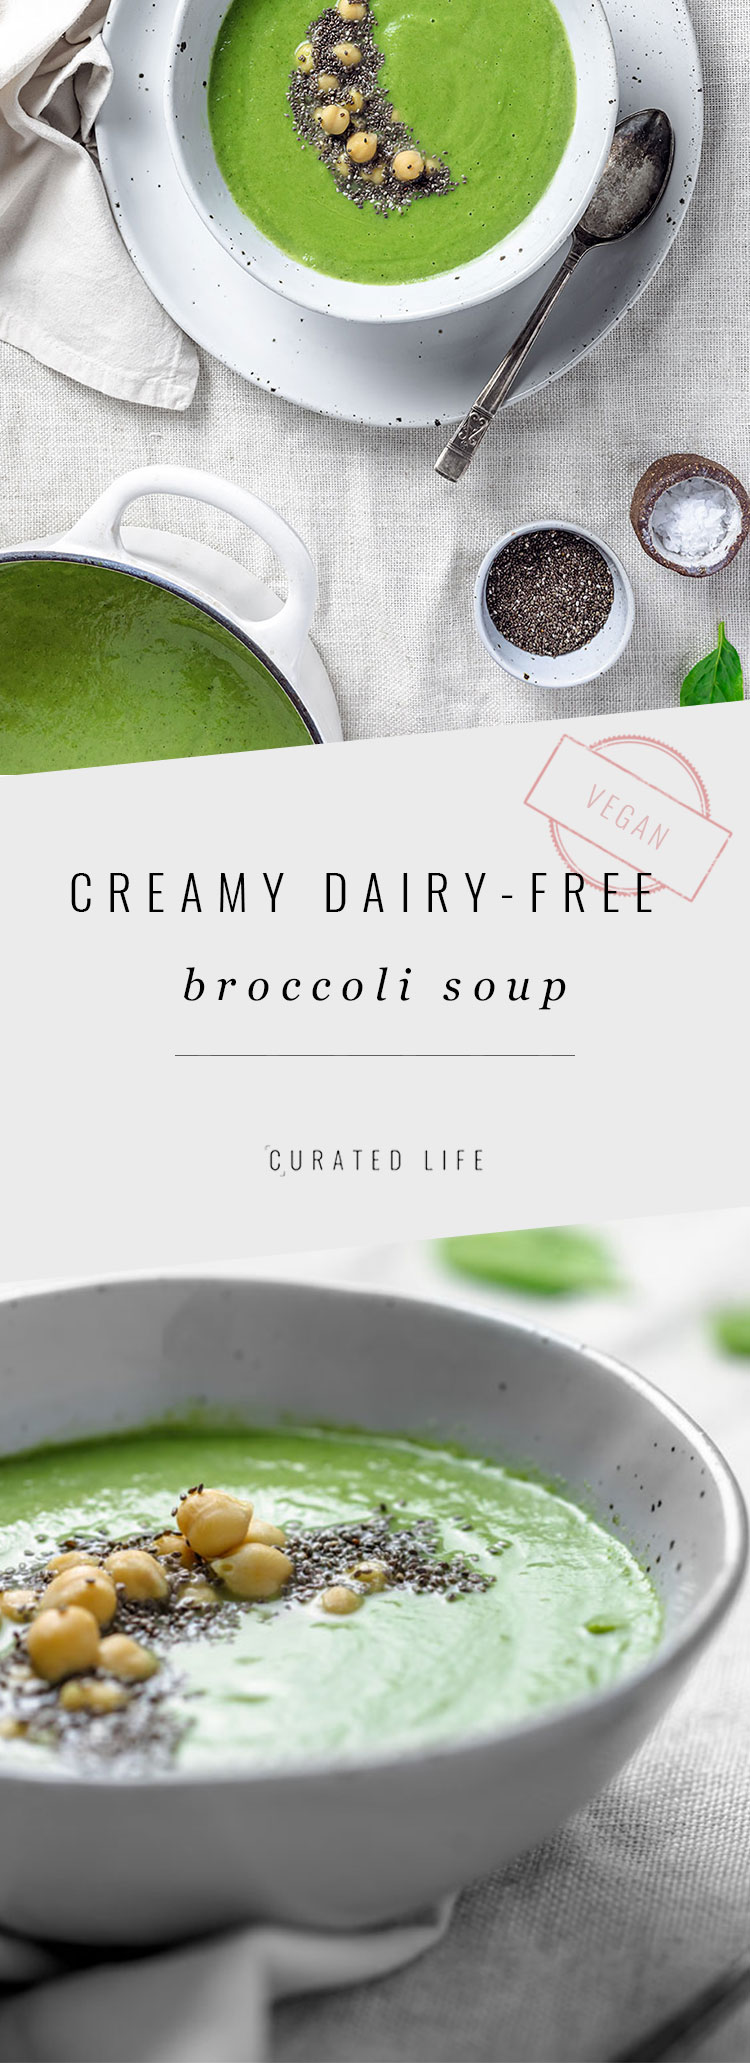 On the table in under 30 minutes, this homemade Dairy Free Broccoli Soup is so creamy you'll forget it was prepared without cream, milk, cheese or dairy!  #Recipe #Soup #Vegan #Gluten-Free #Easy #Healthy #Creamy